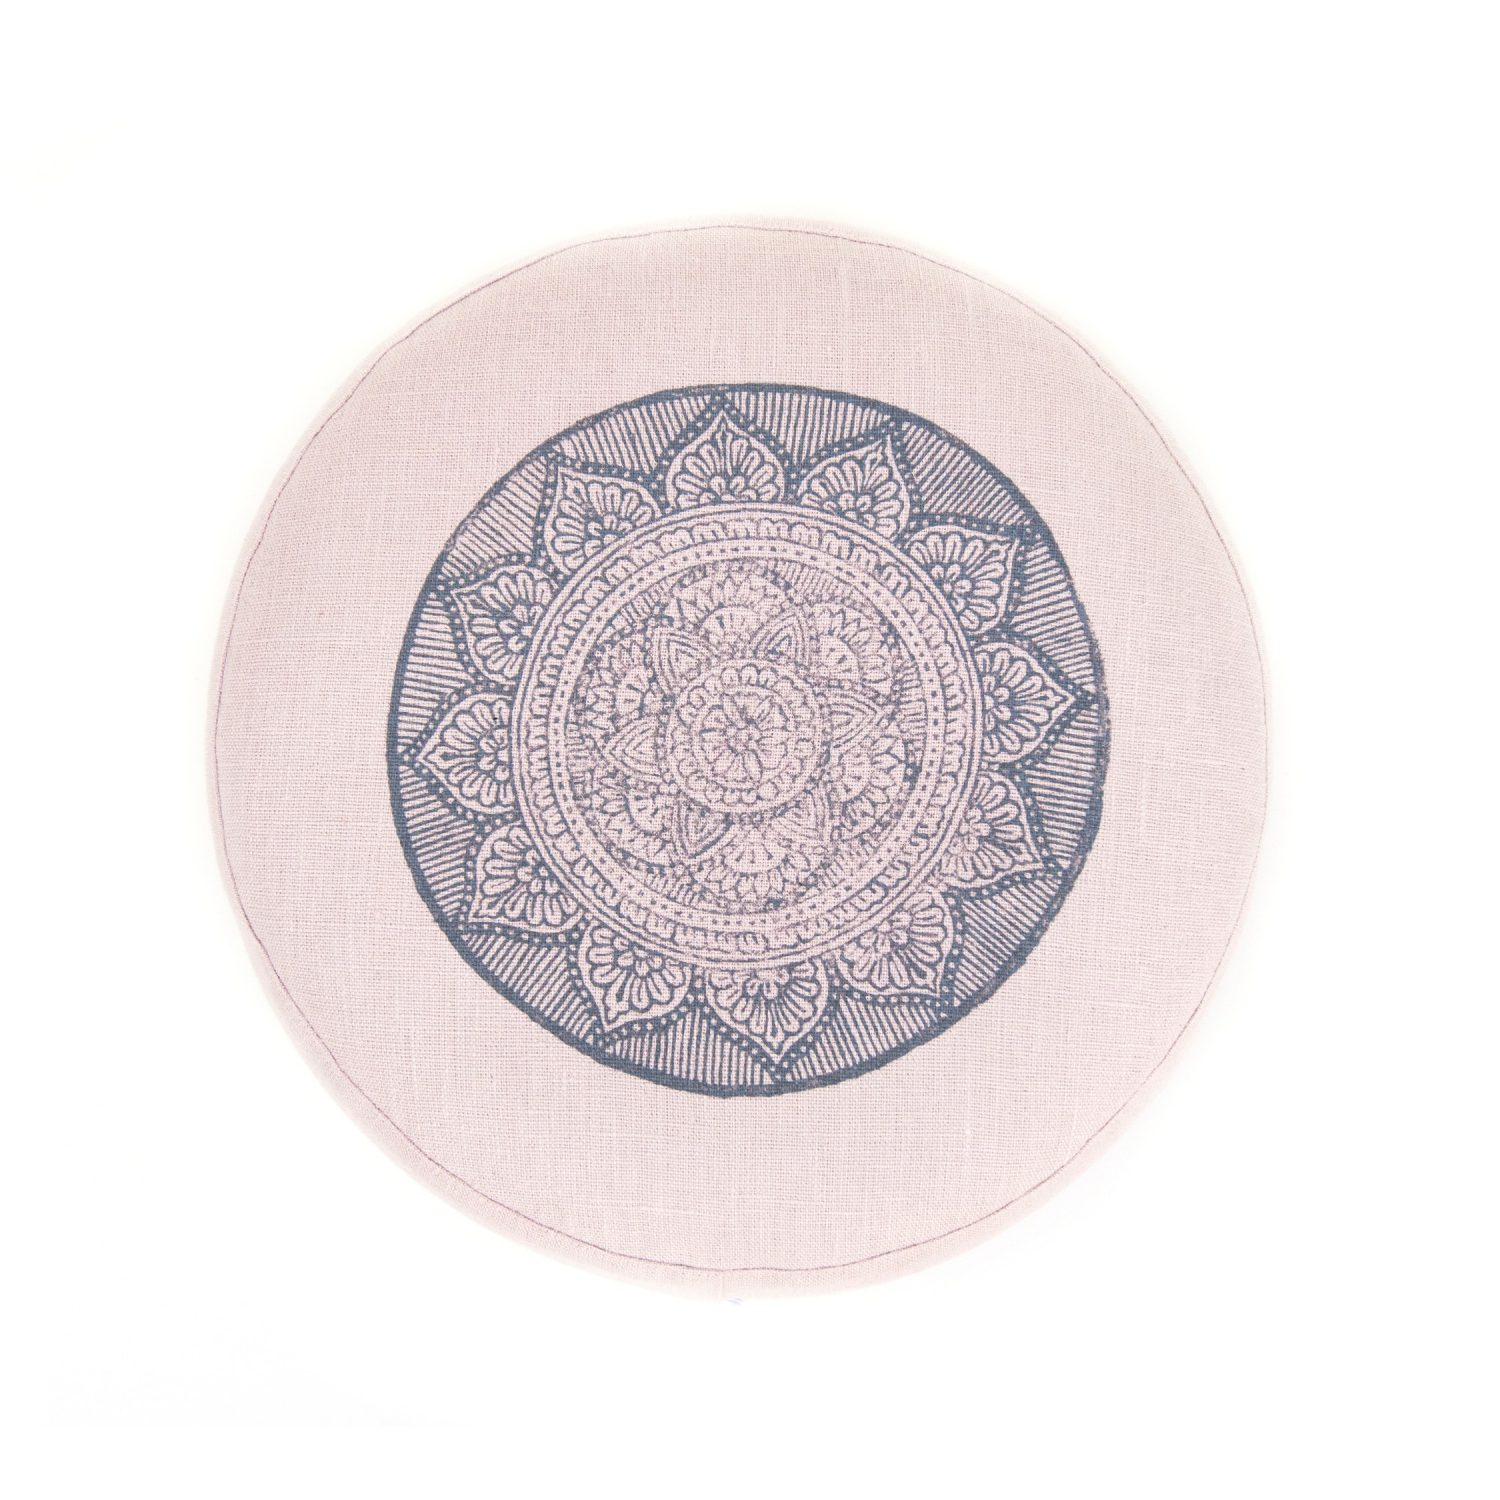 Top view of your light pink meditation cushion